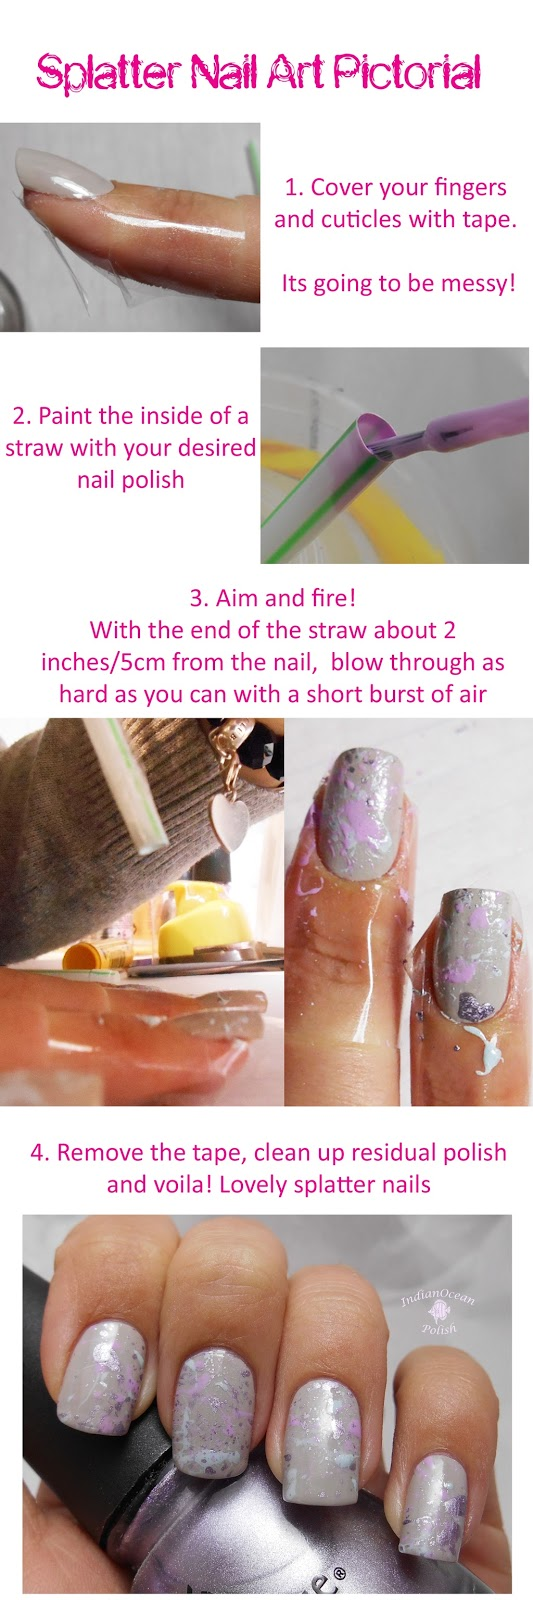 Indian ocean polish pastel paint splatter nail art tutorial splatter nail art is done some notes prinsesfo Choice Image